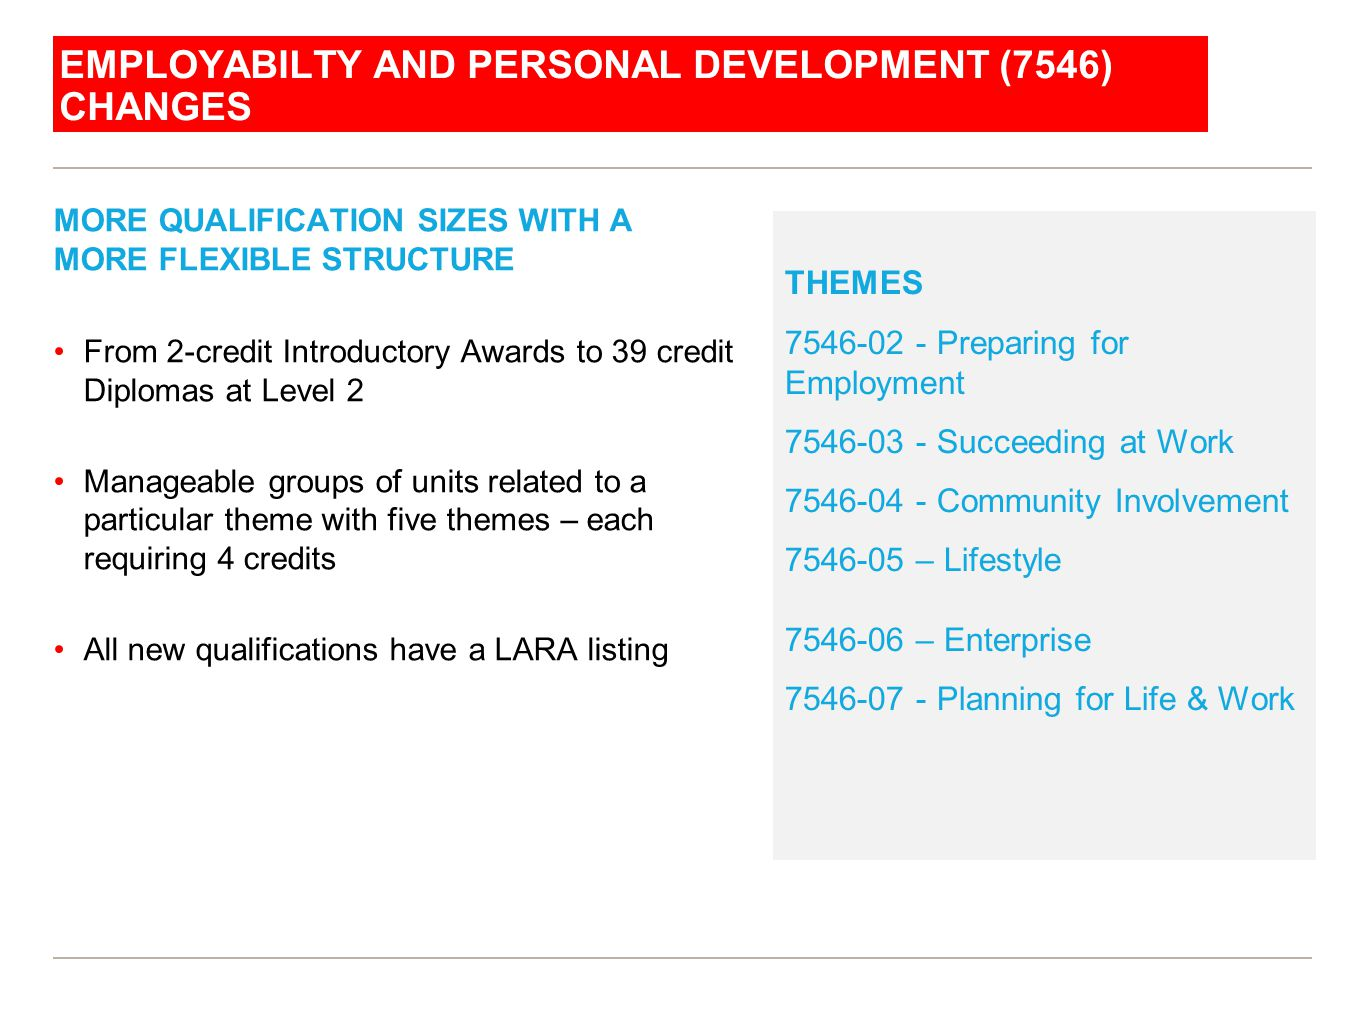 EMPLOYABILTY AND PERSONAL DEVELOPMENT (7546) CHANGES MORE QUALIFICATION SIZES WITH A MORE FLEXIBLE STRUCTURE From 2-credit Introductory Awards to 39 c